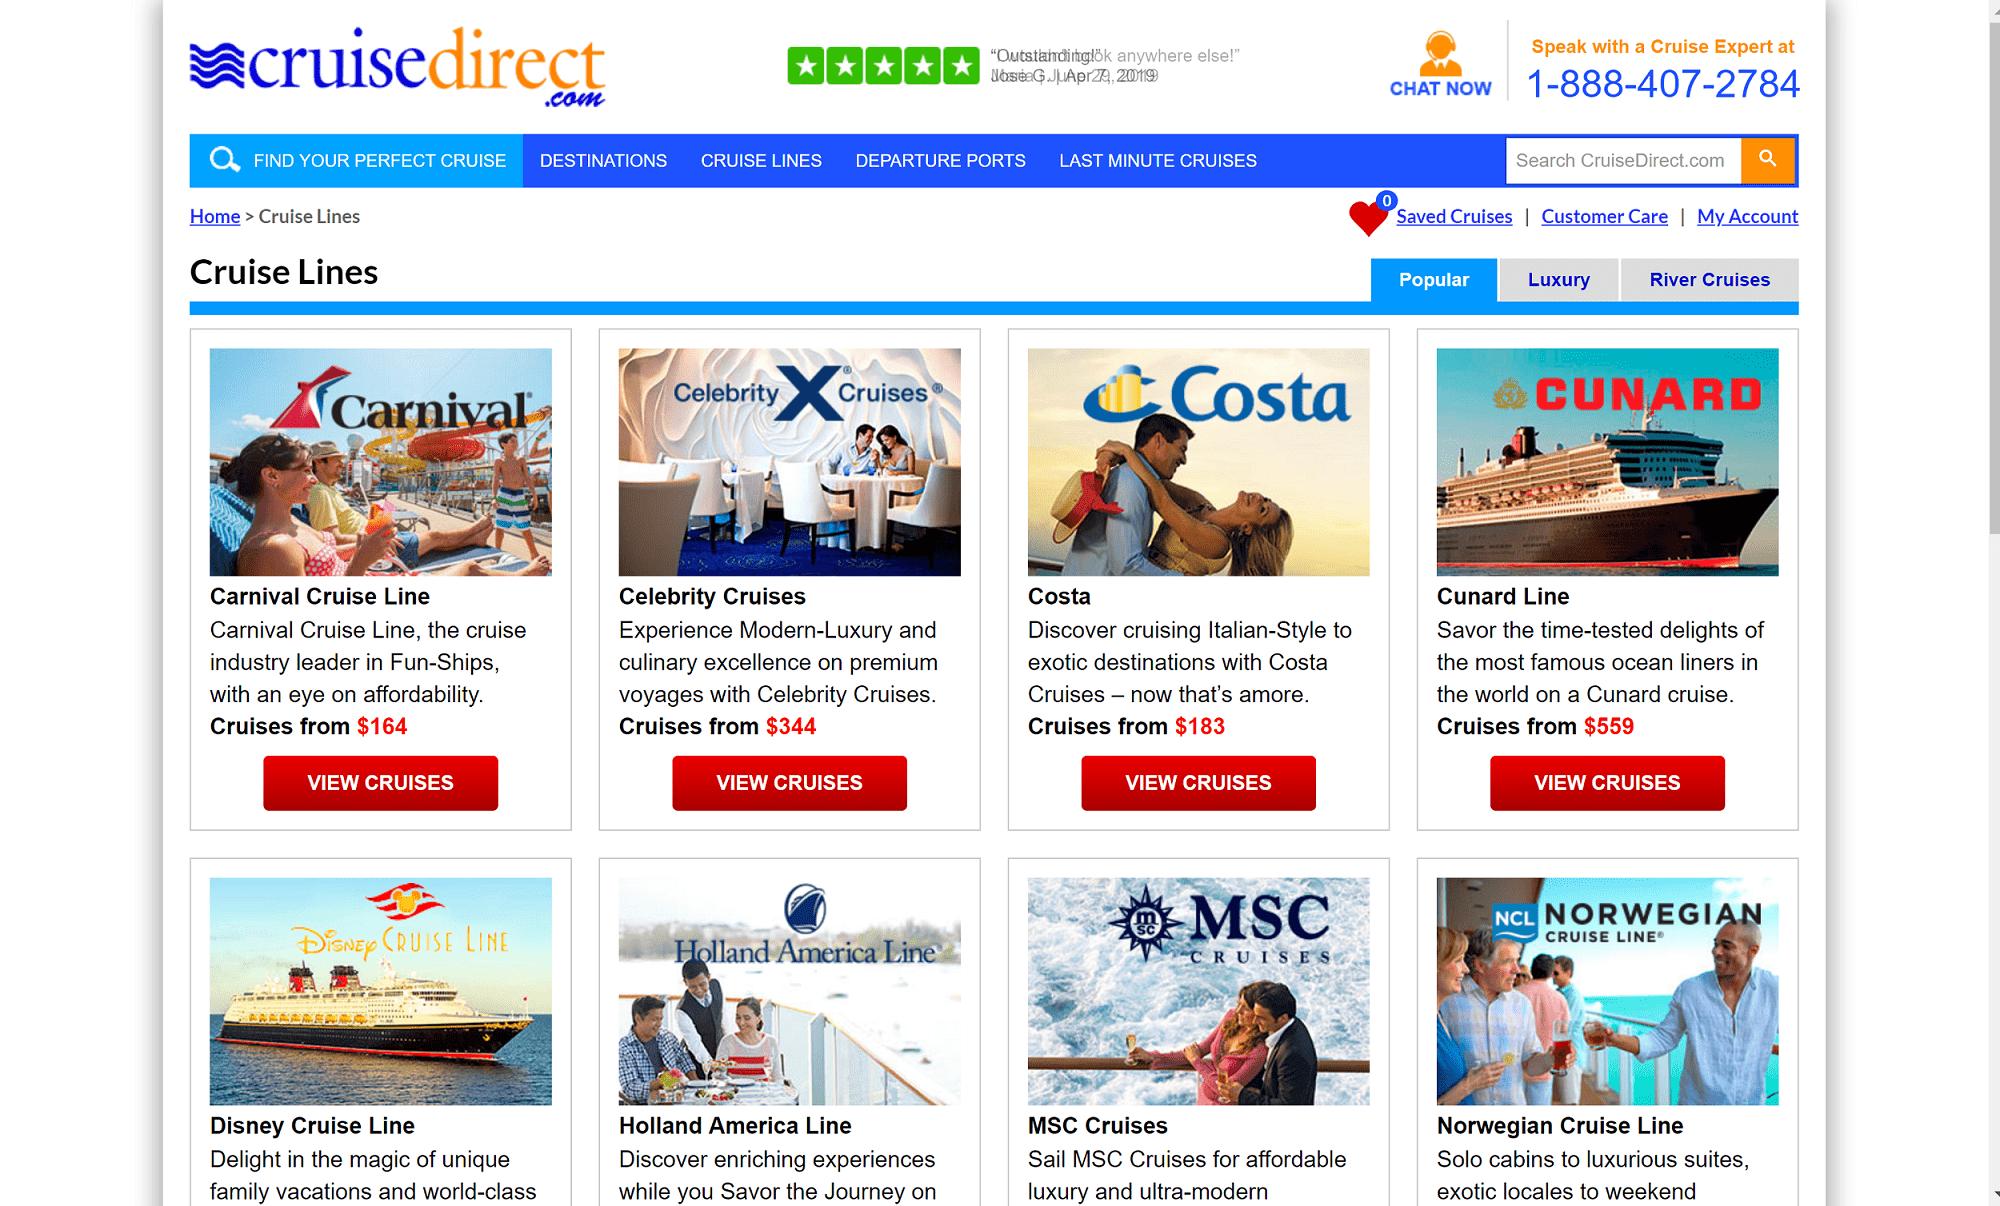 Cruise direct discount coupons